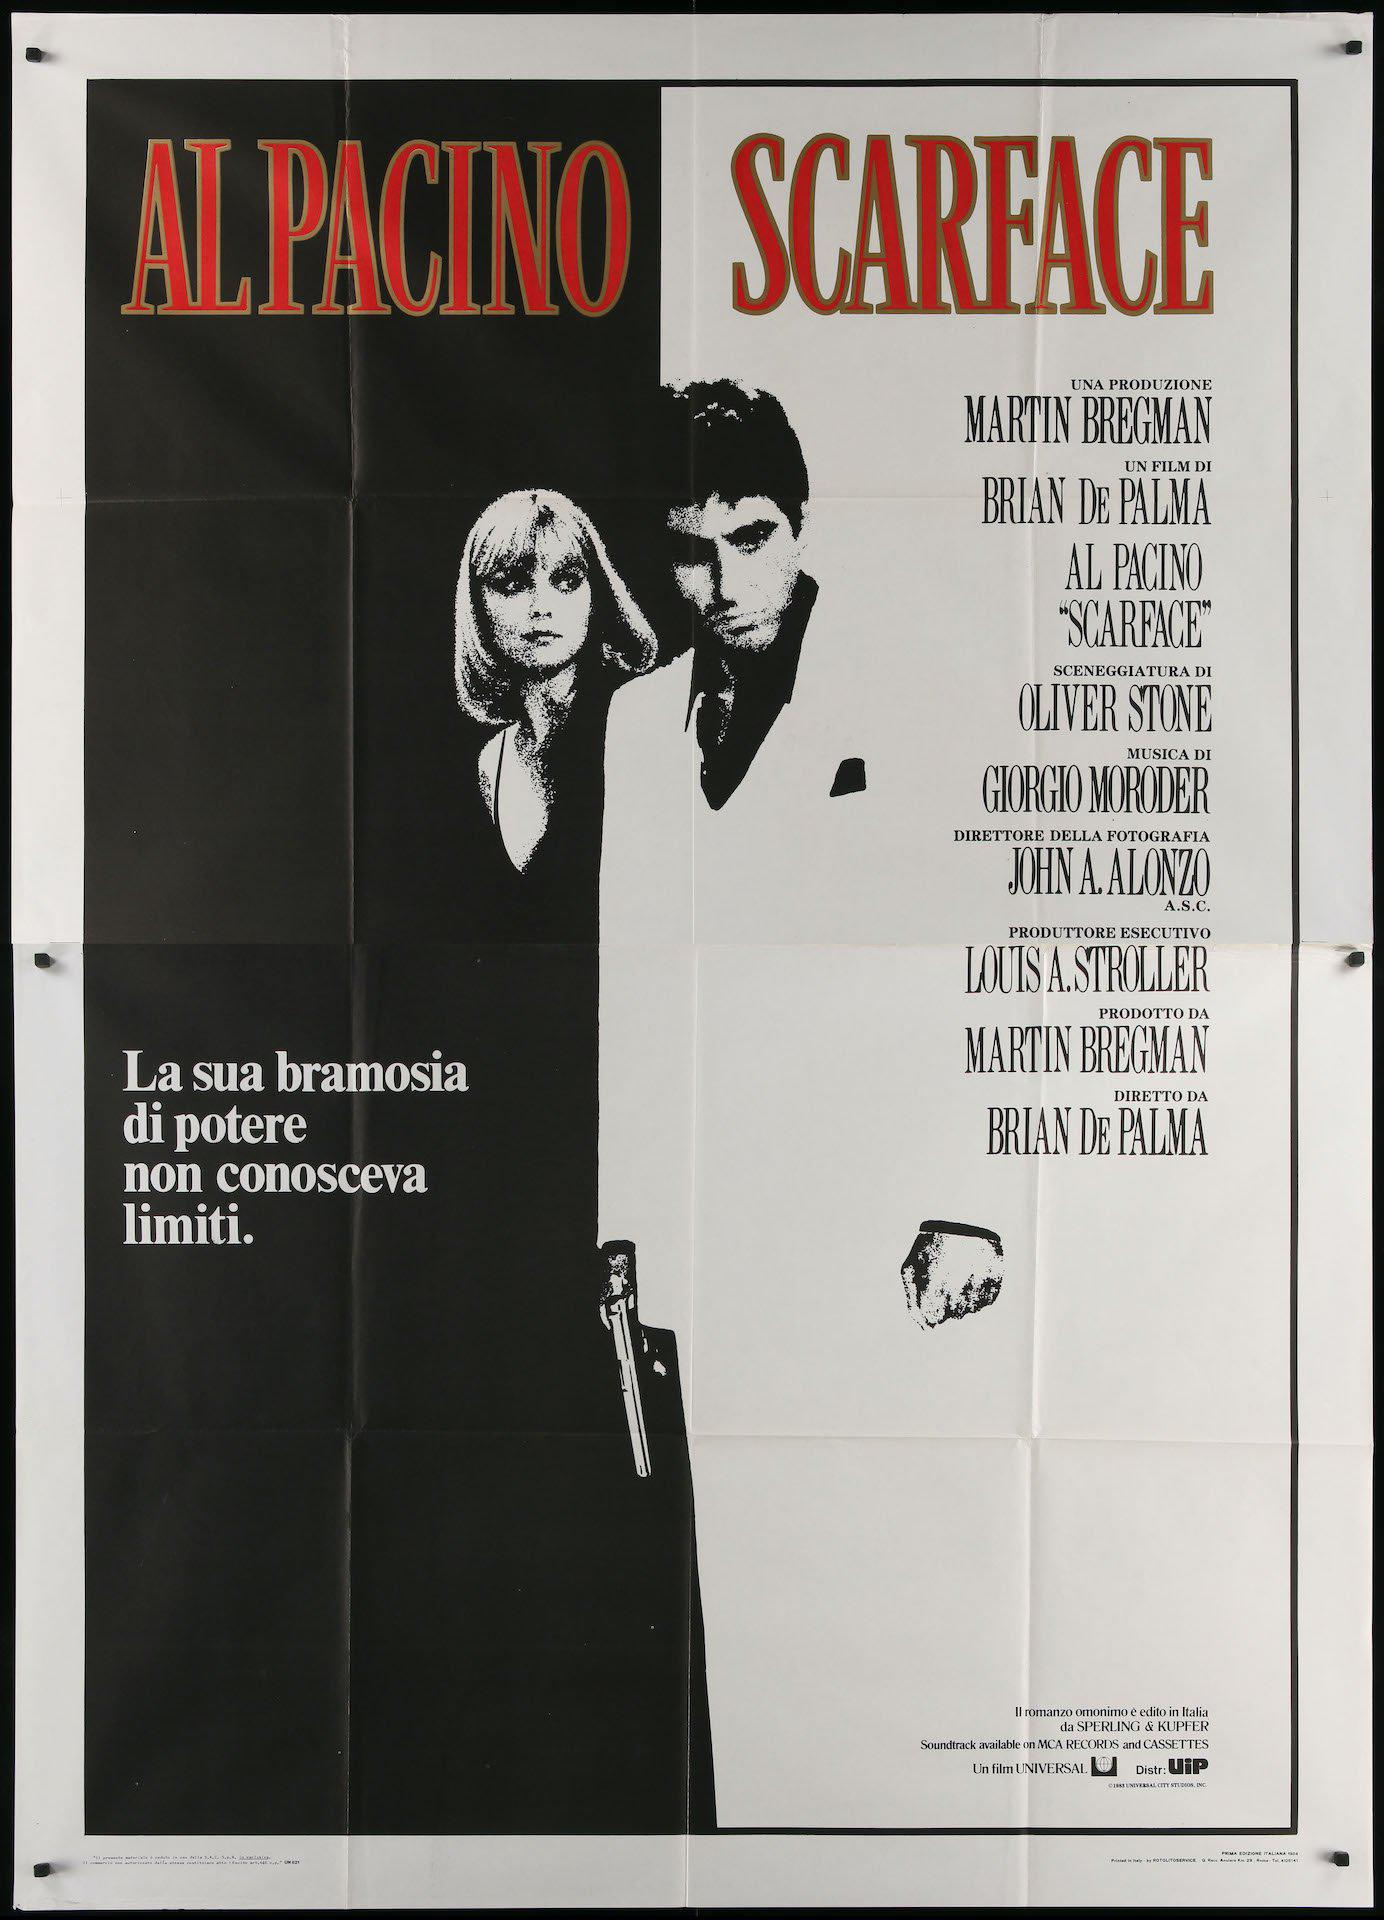 Scarface Italian 4 foglio (55x78) Original Vintage Movie Poster